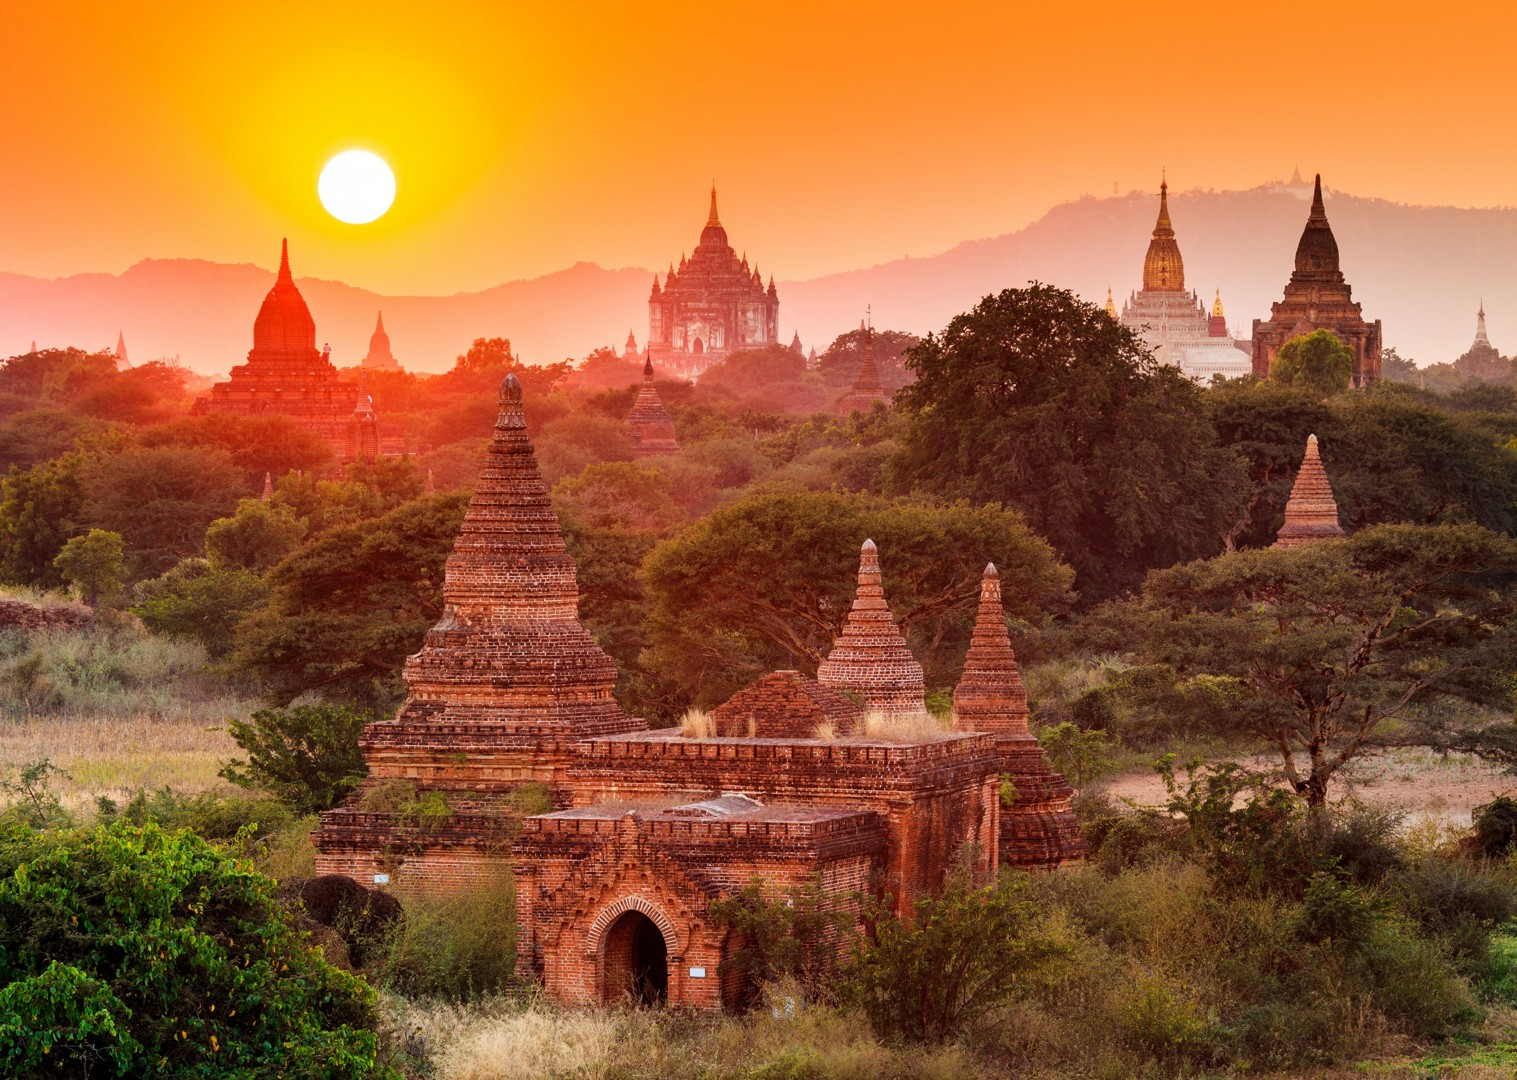 sunset-views-cycling-adventure-in-burma-bagan-myanmar.jpg - Myanmar (Burma) - Bagan and Beyond - Cycling Adventures